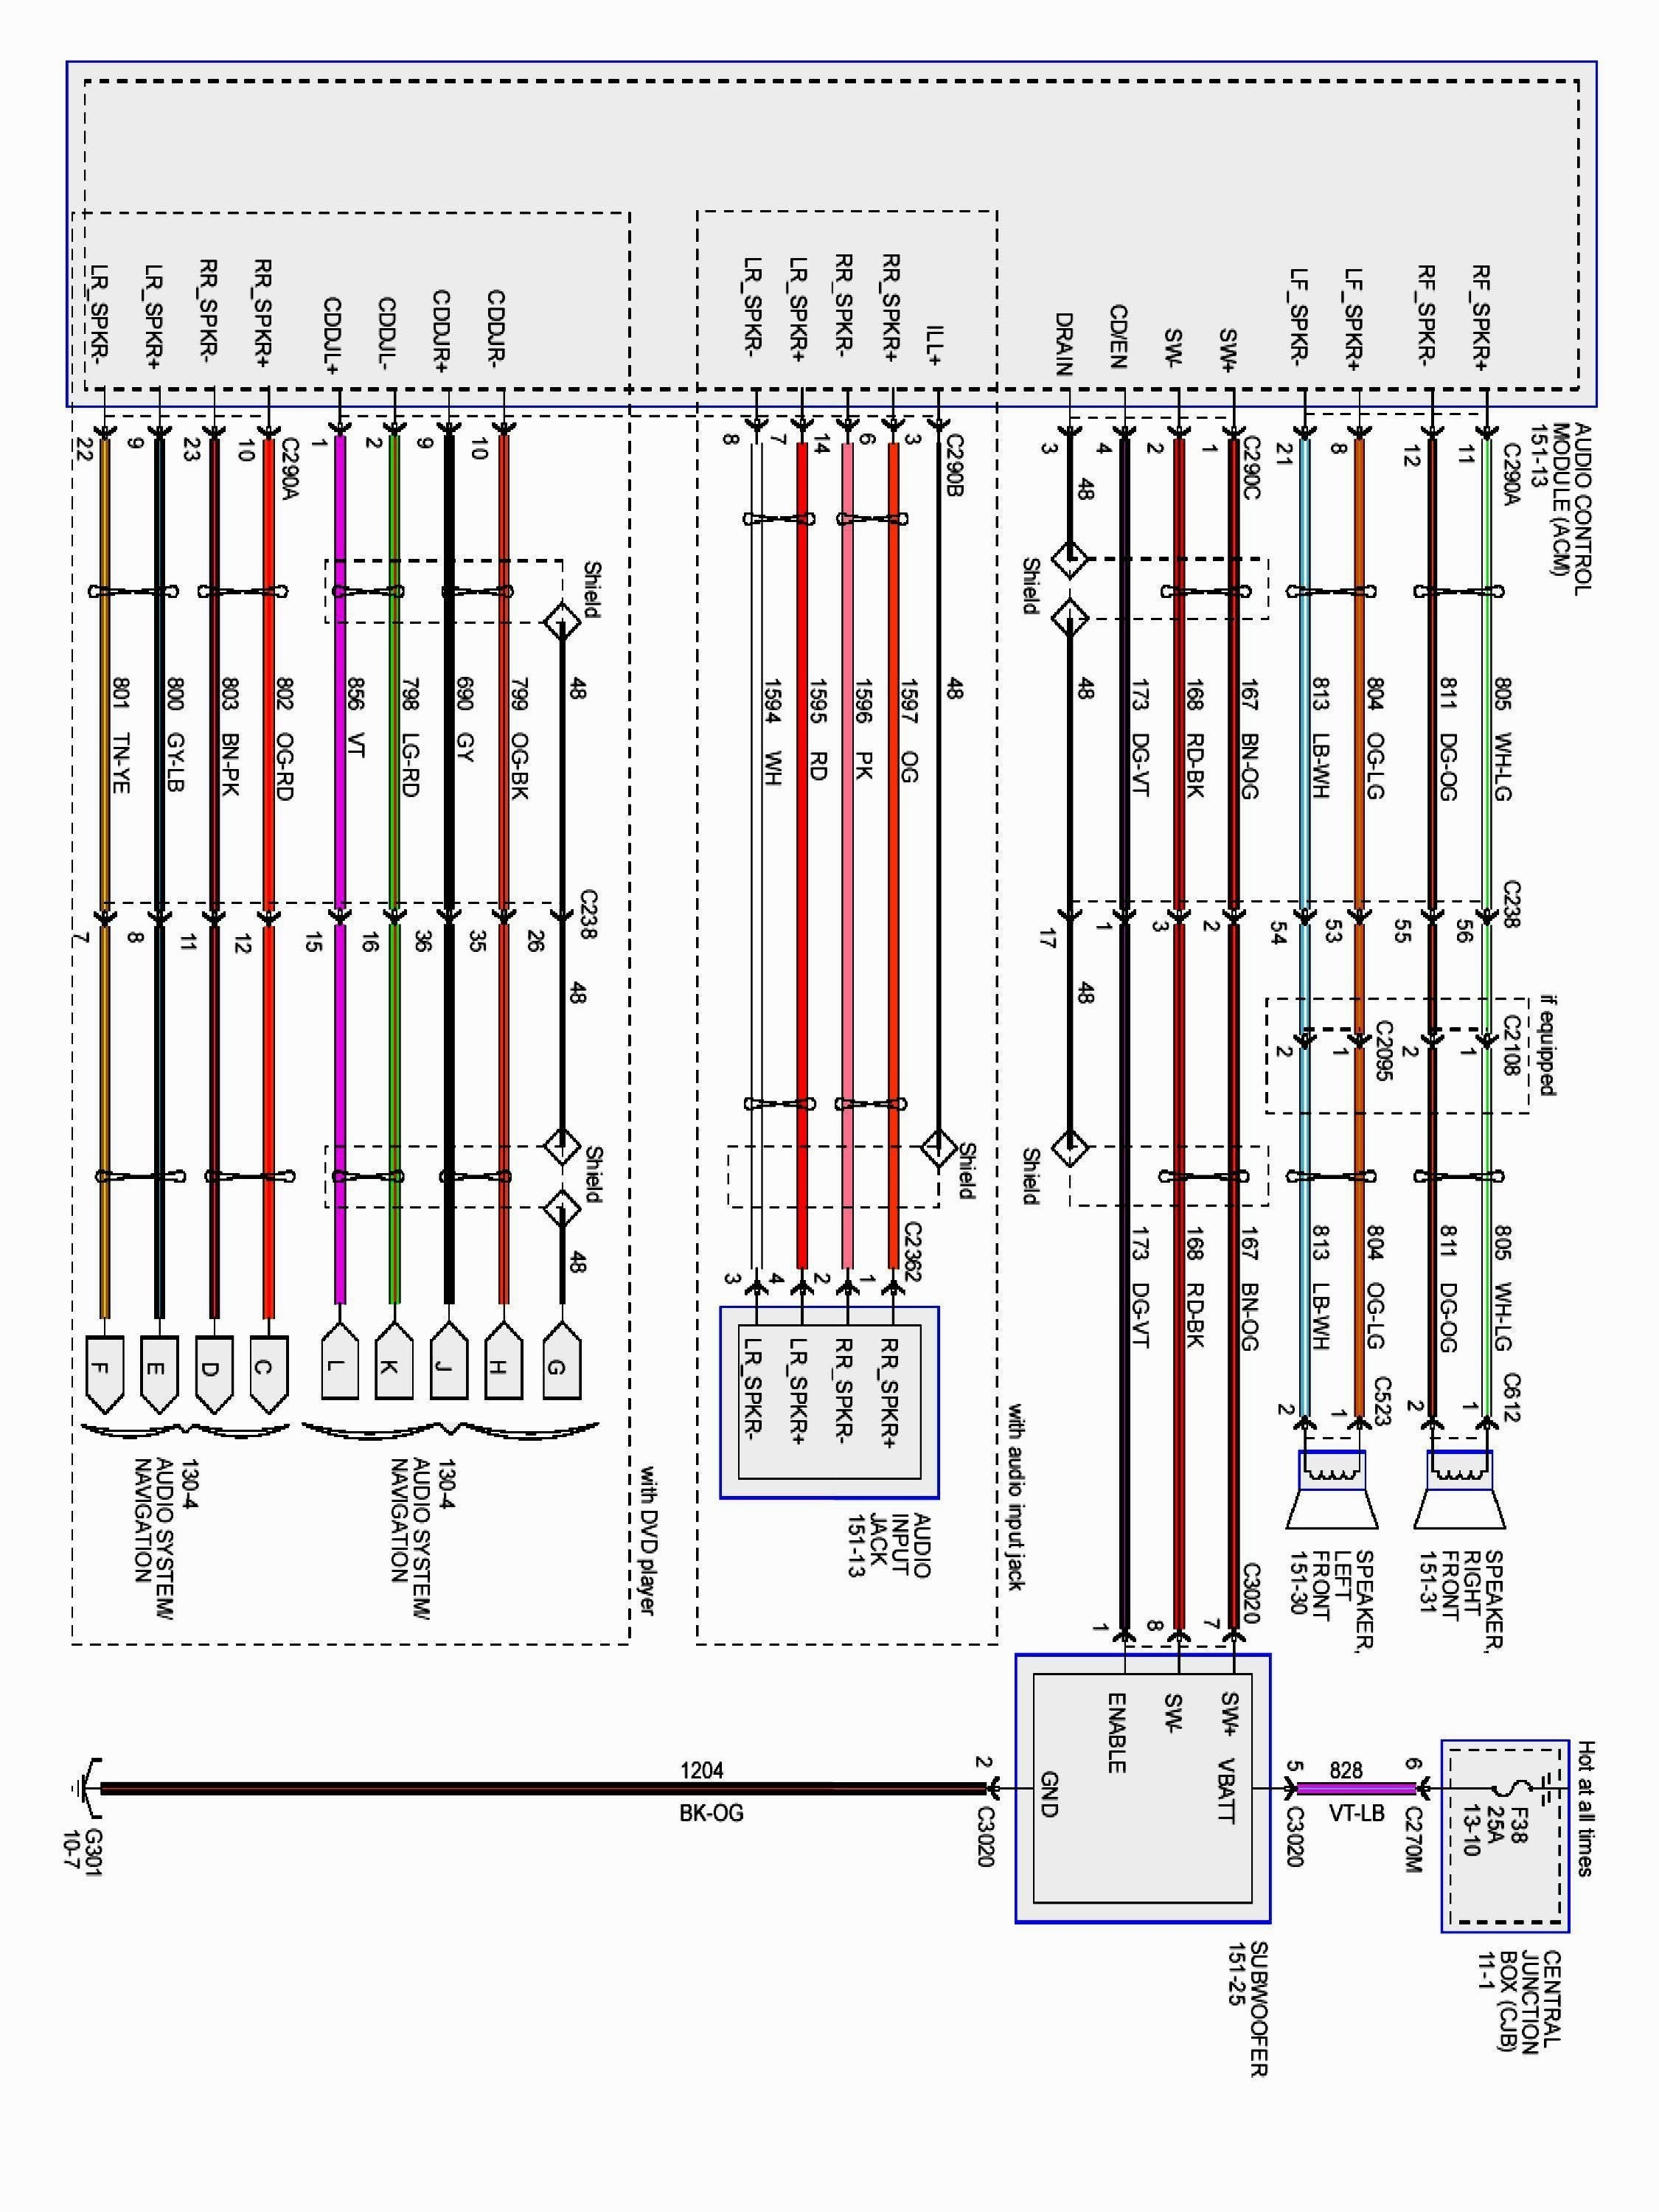 wiring diagram kenwood kdc 138 vt 2269  marine stereo wiring diagram likewise kenwood kdc 138  marine stereo wiring diagram likewise